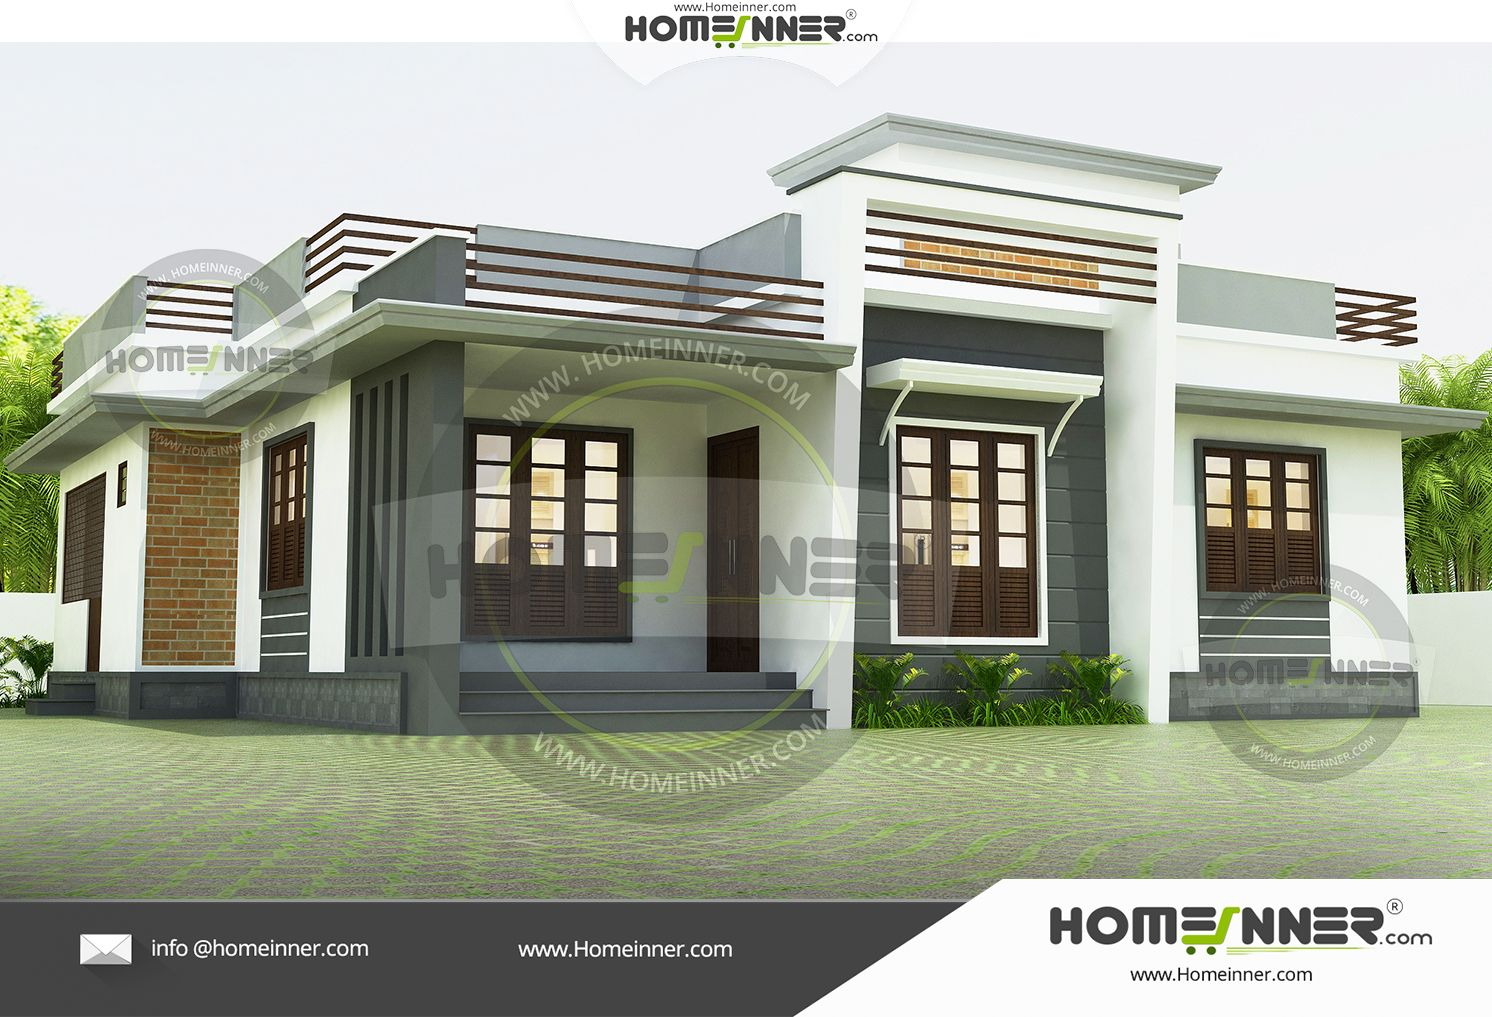 Https://www.homeinner.com/980 Sq Ft Low Budget Modern 3 Bedroom House Design /